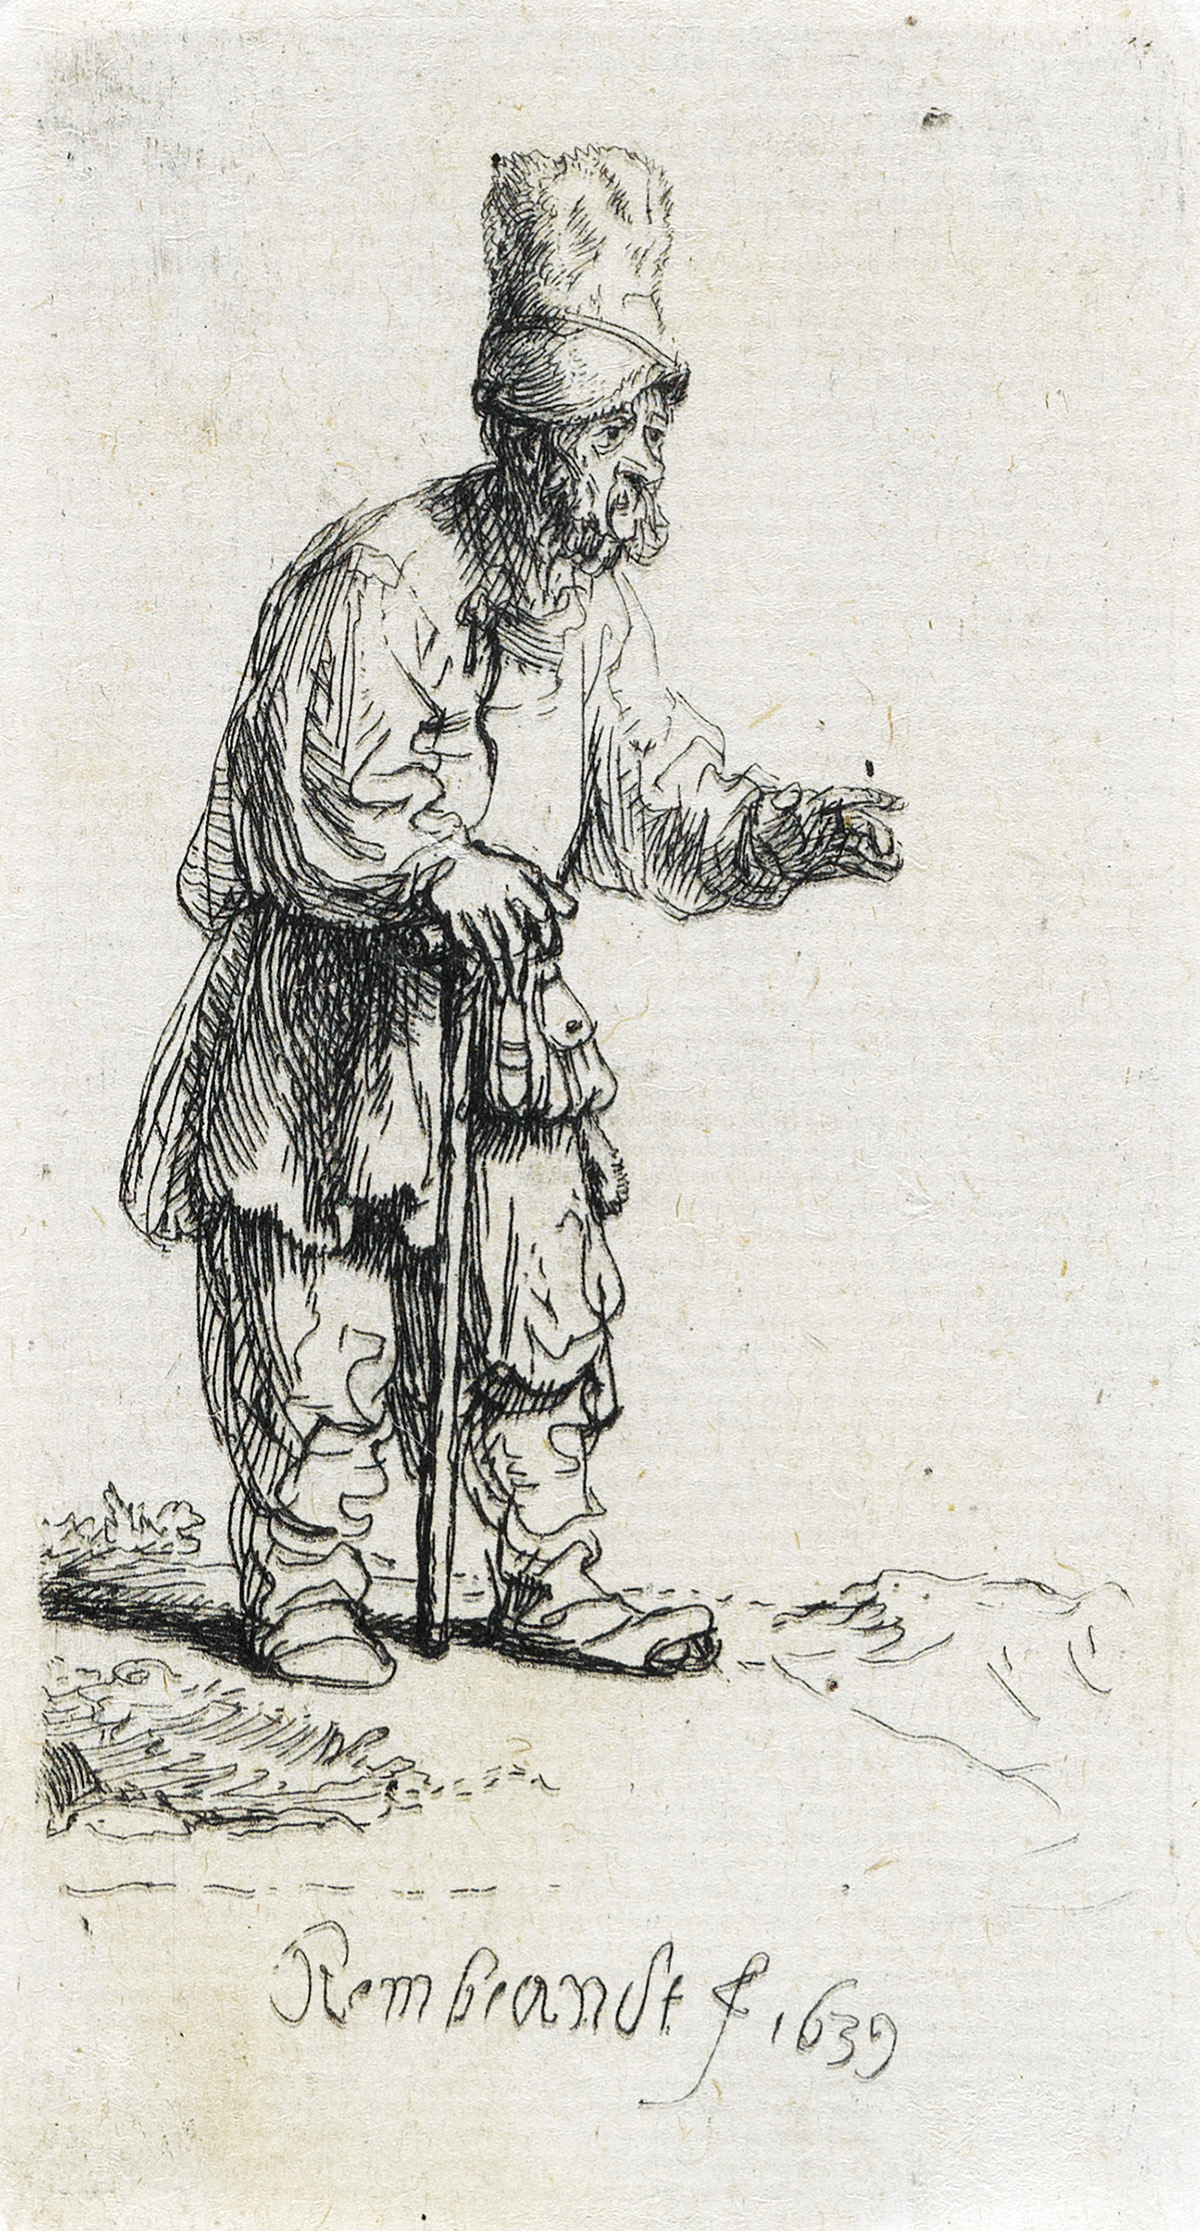 REMBRANDT-VAN-RIJN-A-Peasant-in-a-High-Cap-Standing-Leaning-